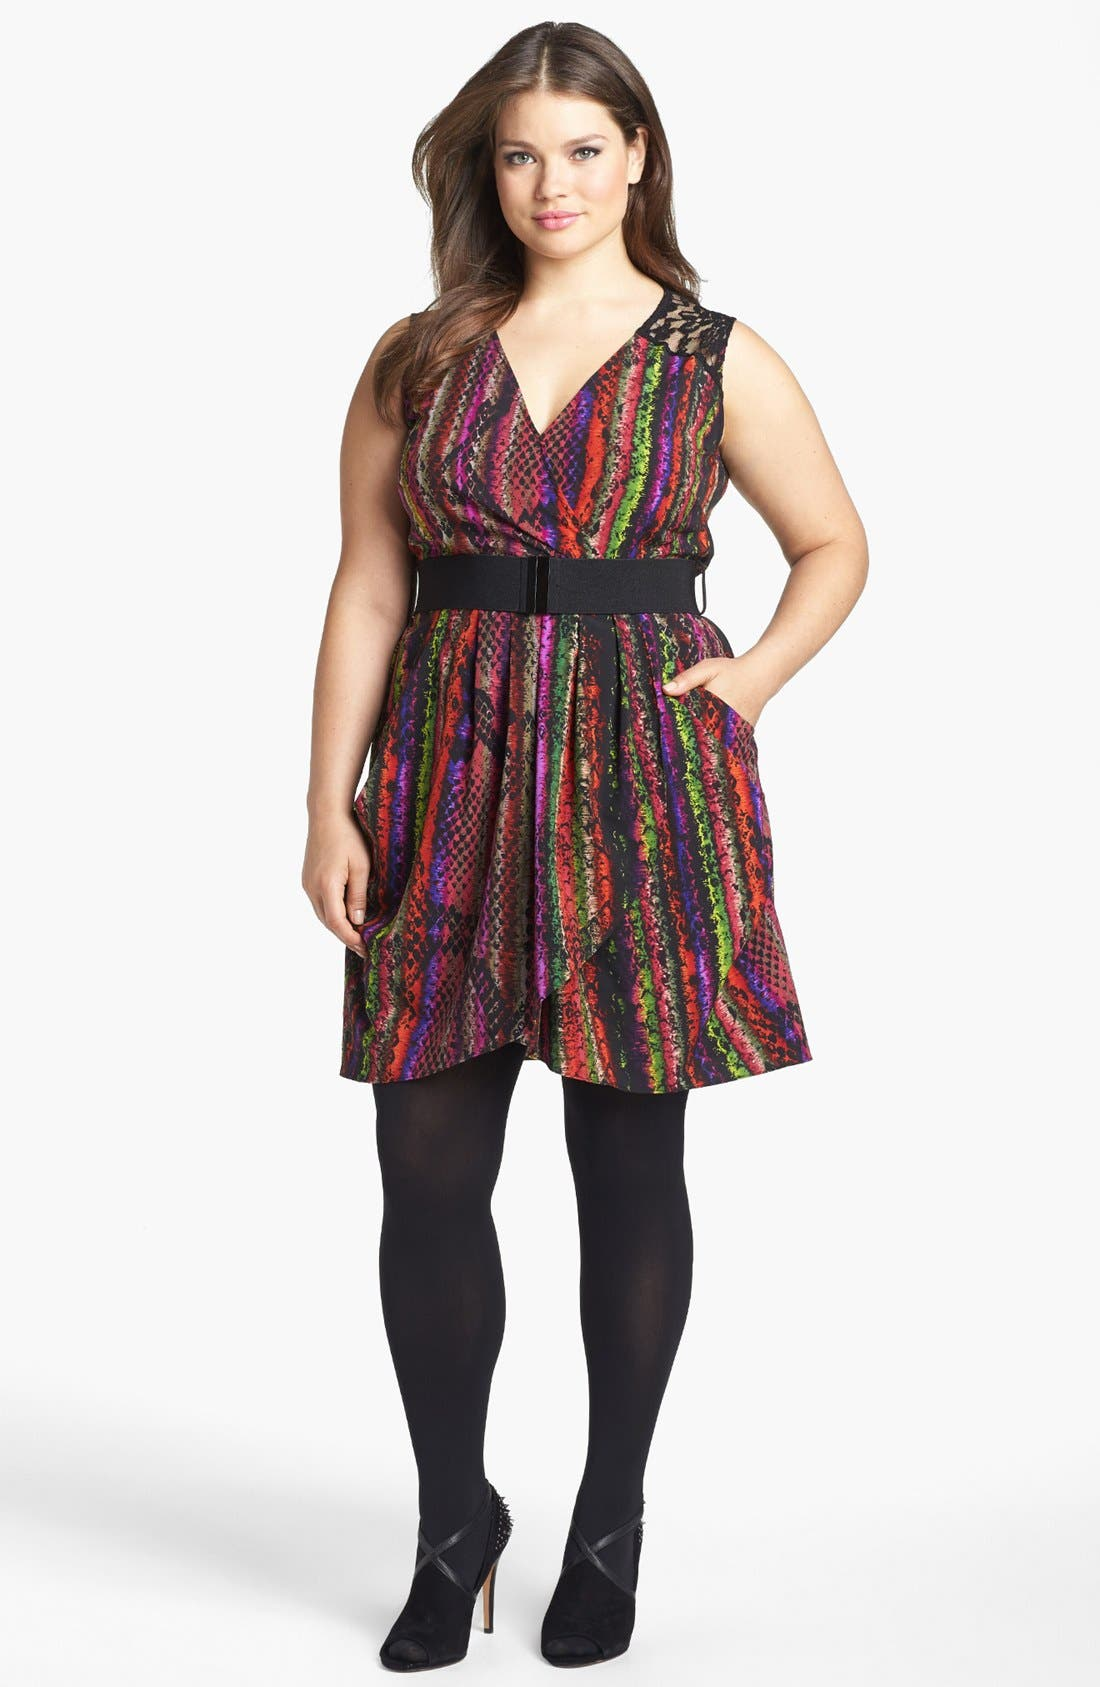 Alternate Image 1 Selected - City Chic 'Rainbow Serpent' Lace Trim Print Top(Plus Size)